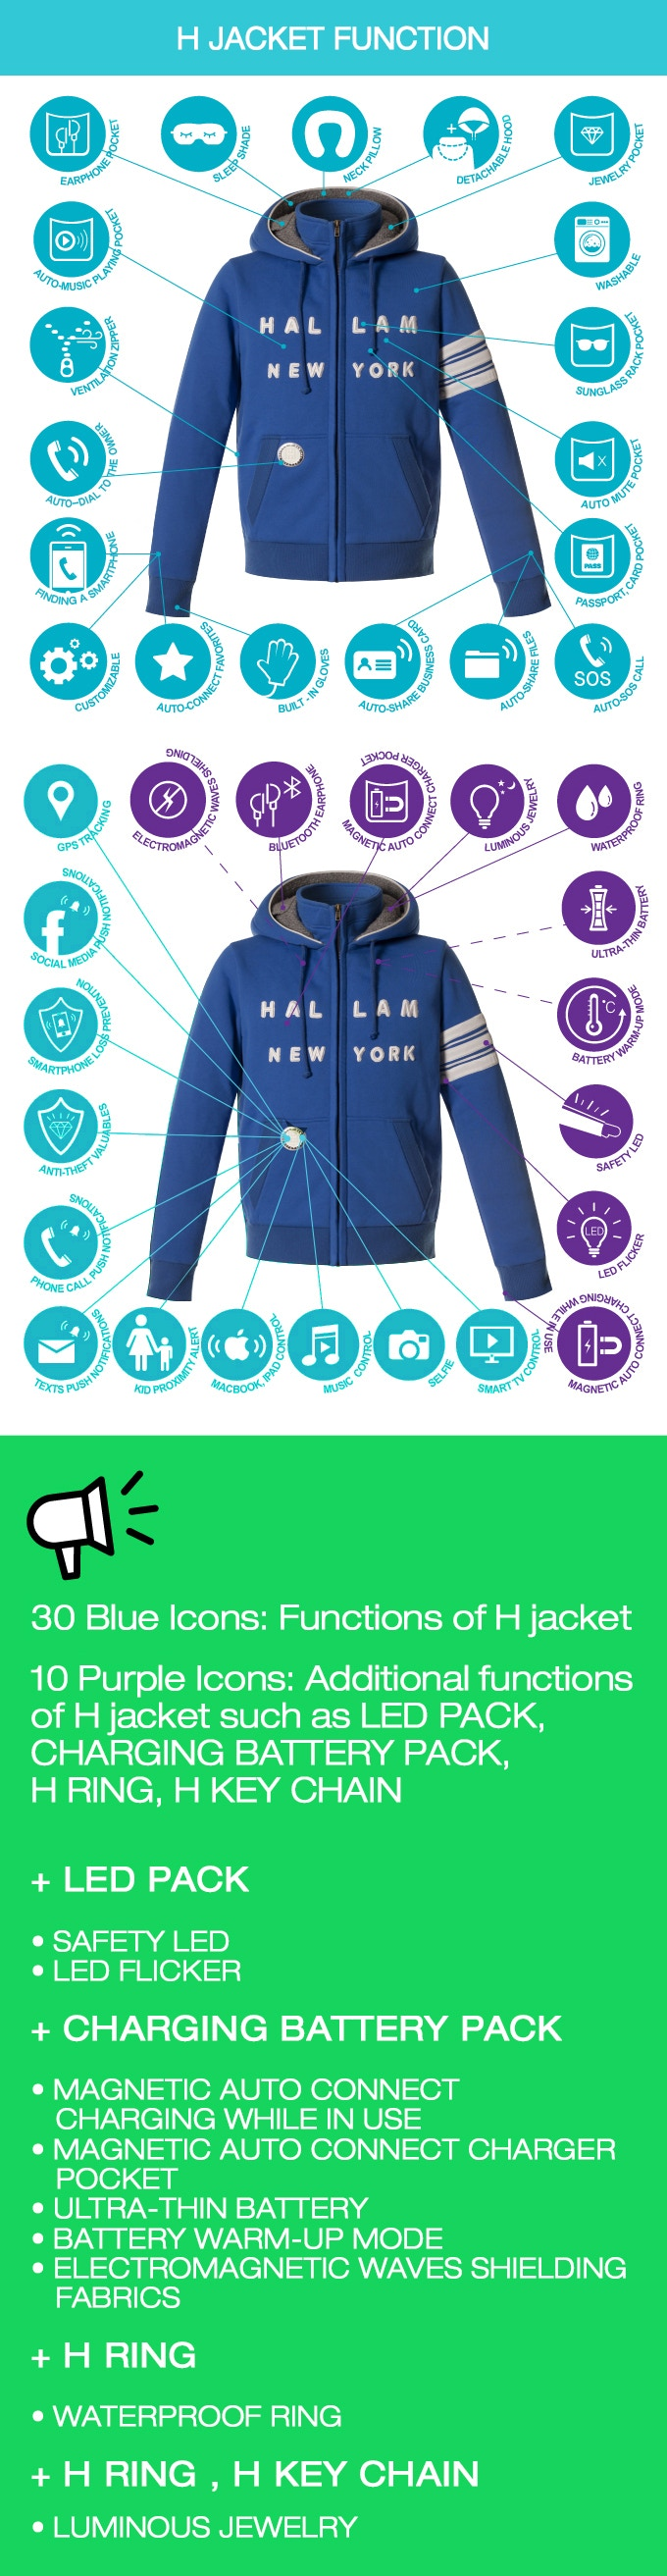 Smart Jacket For Smartphone User Travel 40 Functions By Jaket Hoodie One Direction Black Of Hallam P New York After 2 Years Tremendous Effort And Research Worlds First Was Released Both Iphone Android Users